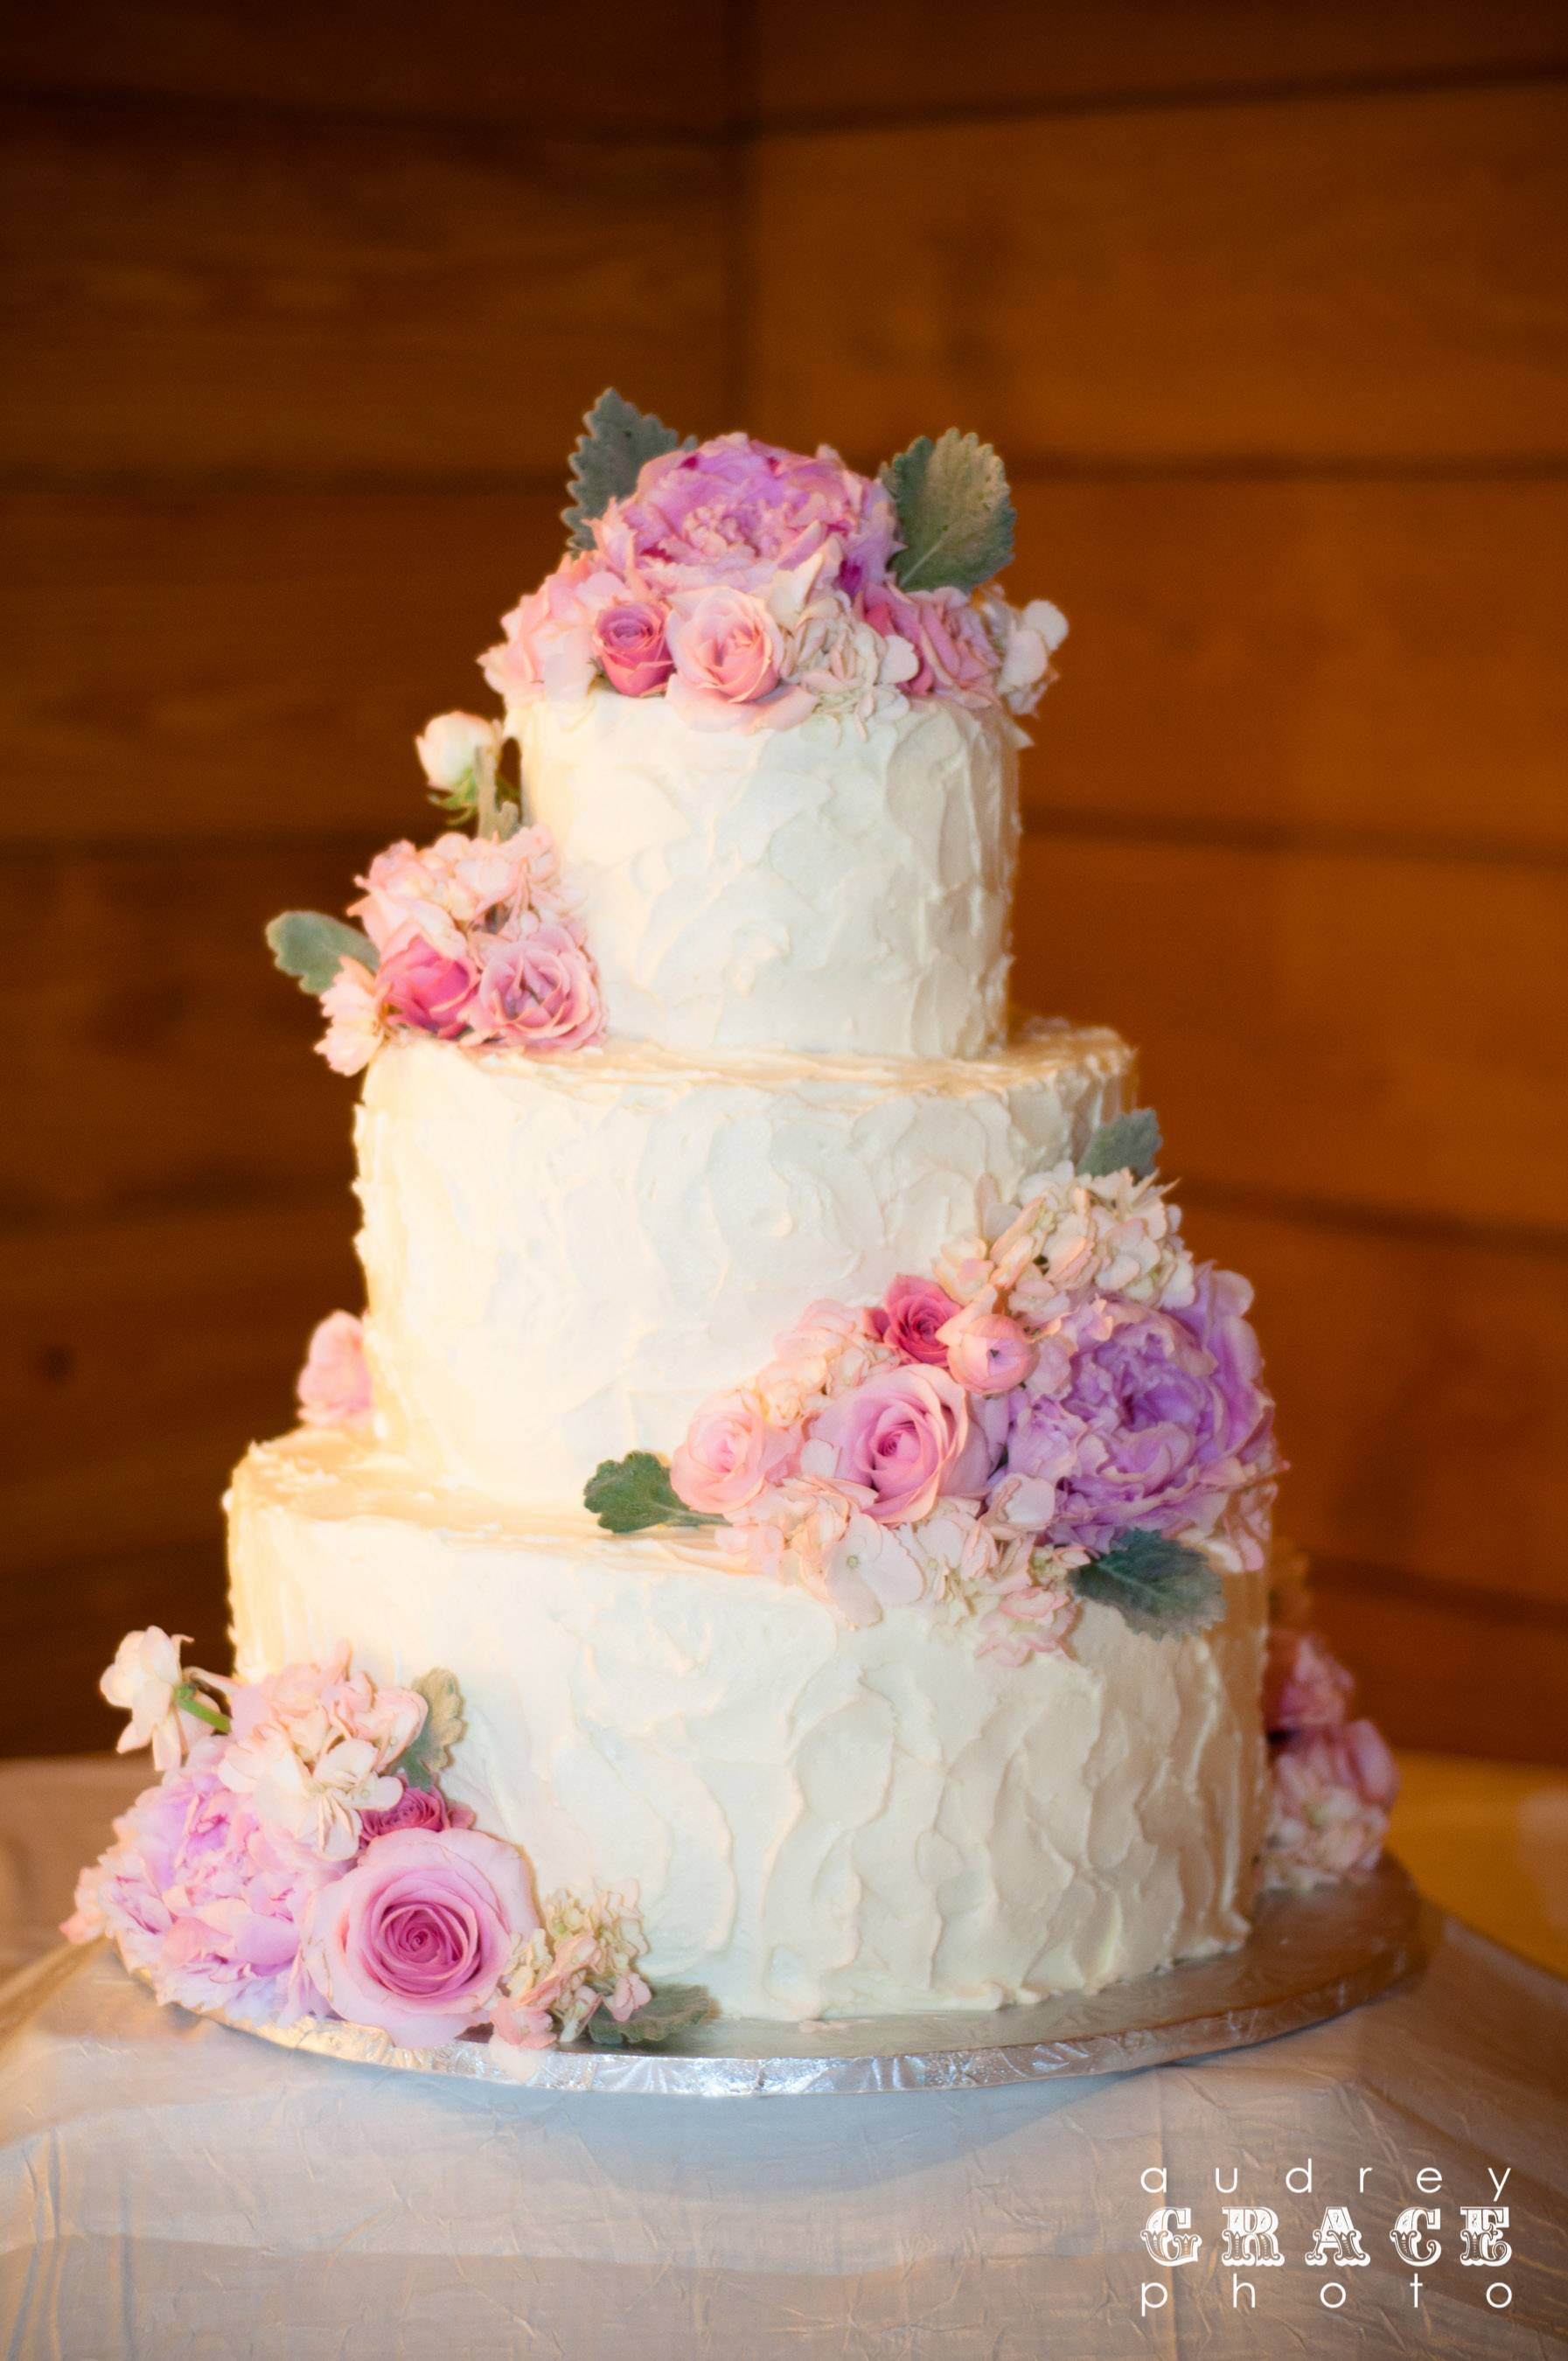 Kara & Dustin's wedding cake